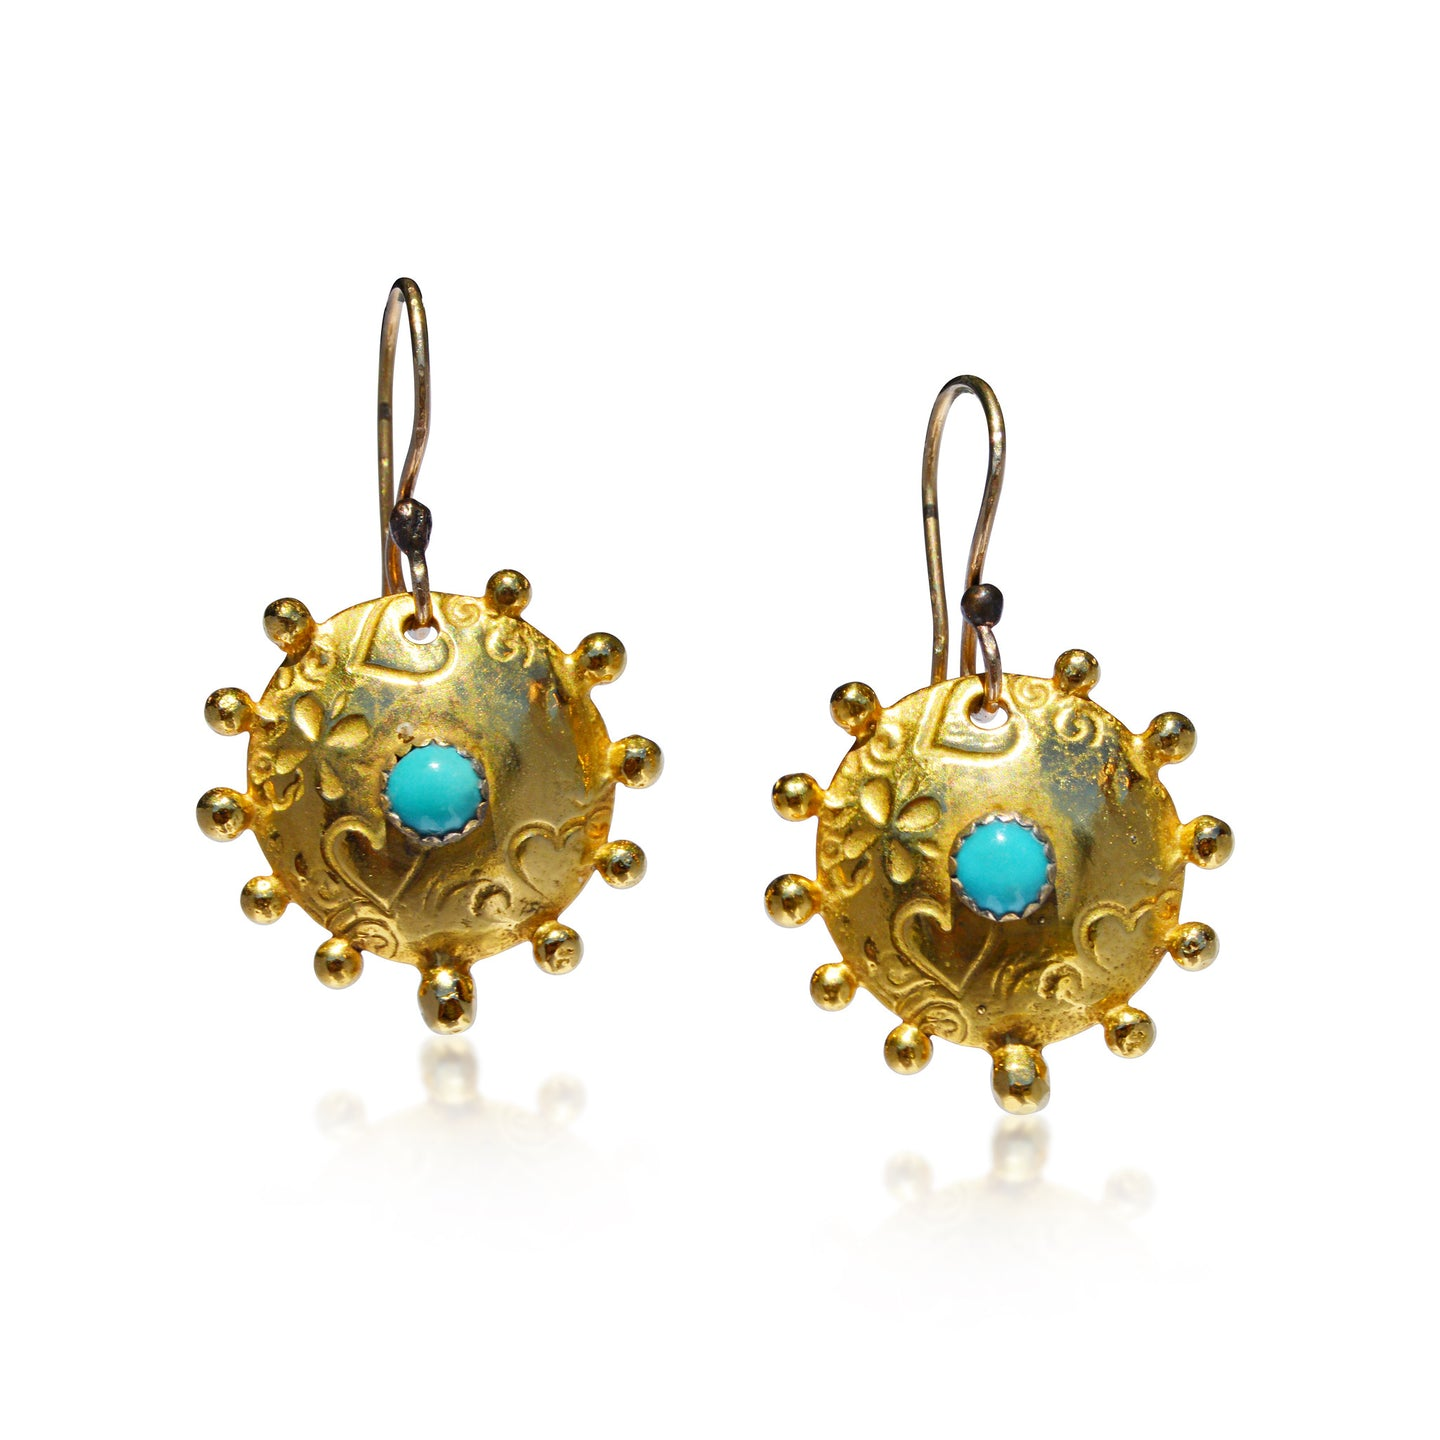 Golden Gilded Athena's Shield Earrings